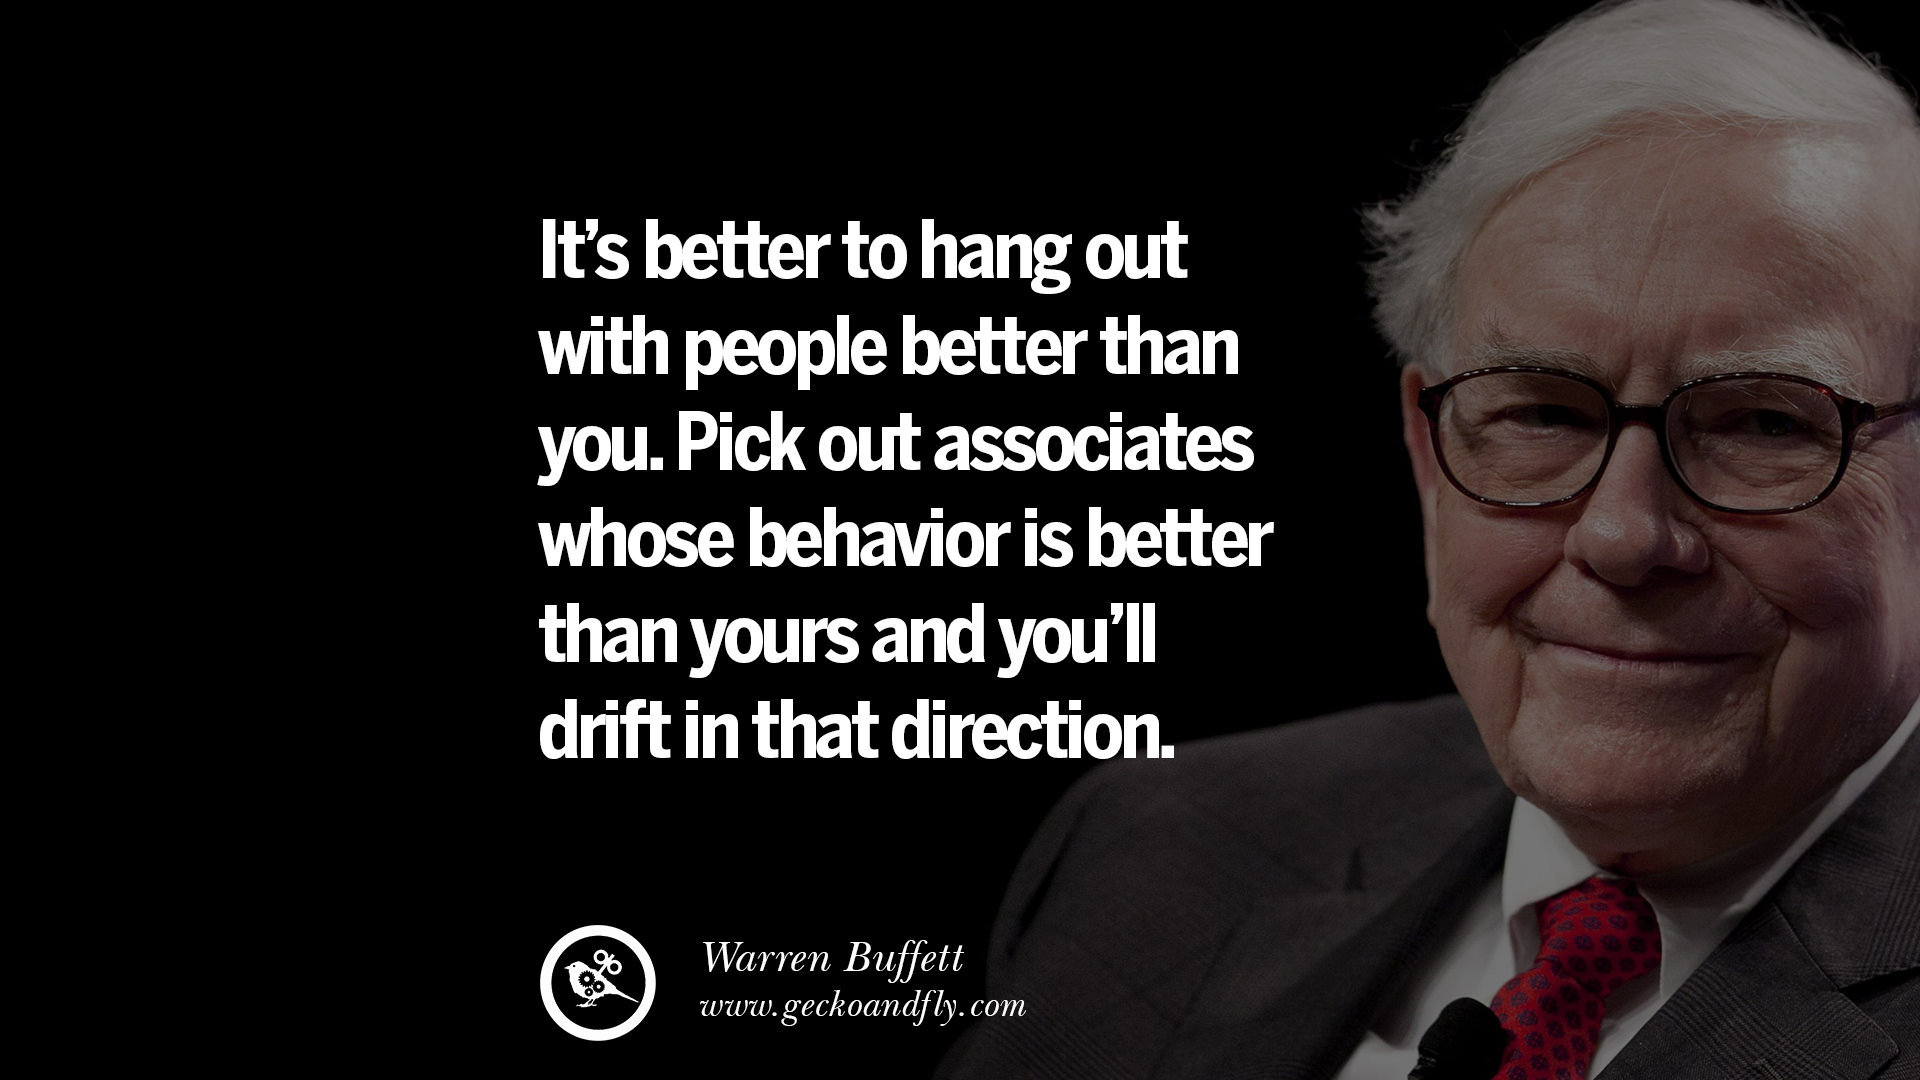 Warren Buffett Quotes | 12 Best Warren Buffett Quotes On Investment Life And Making Money